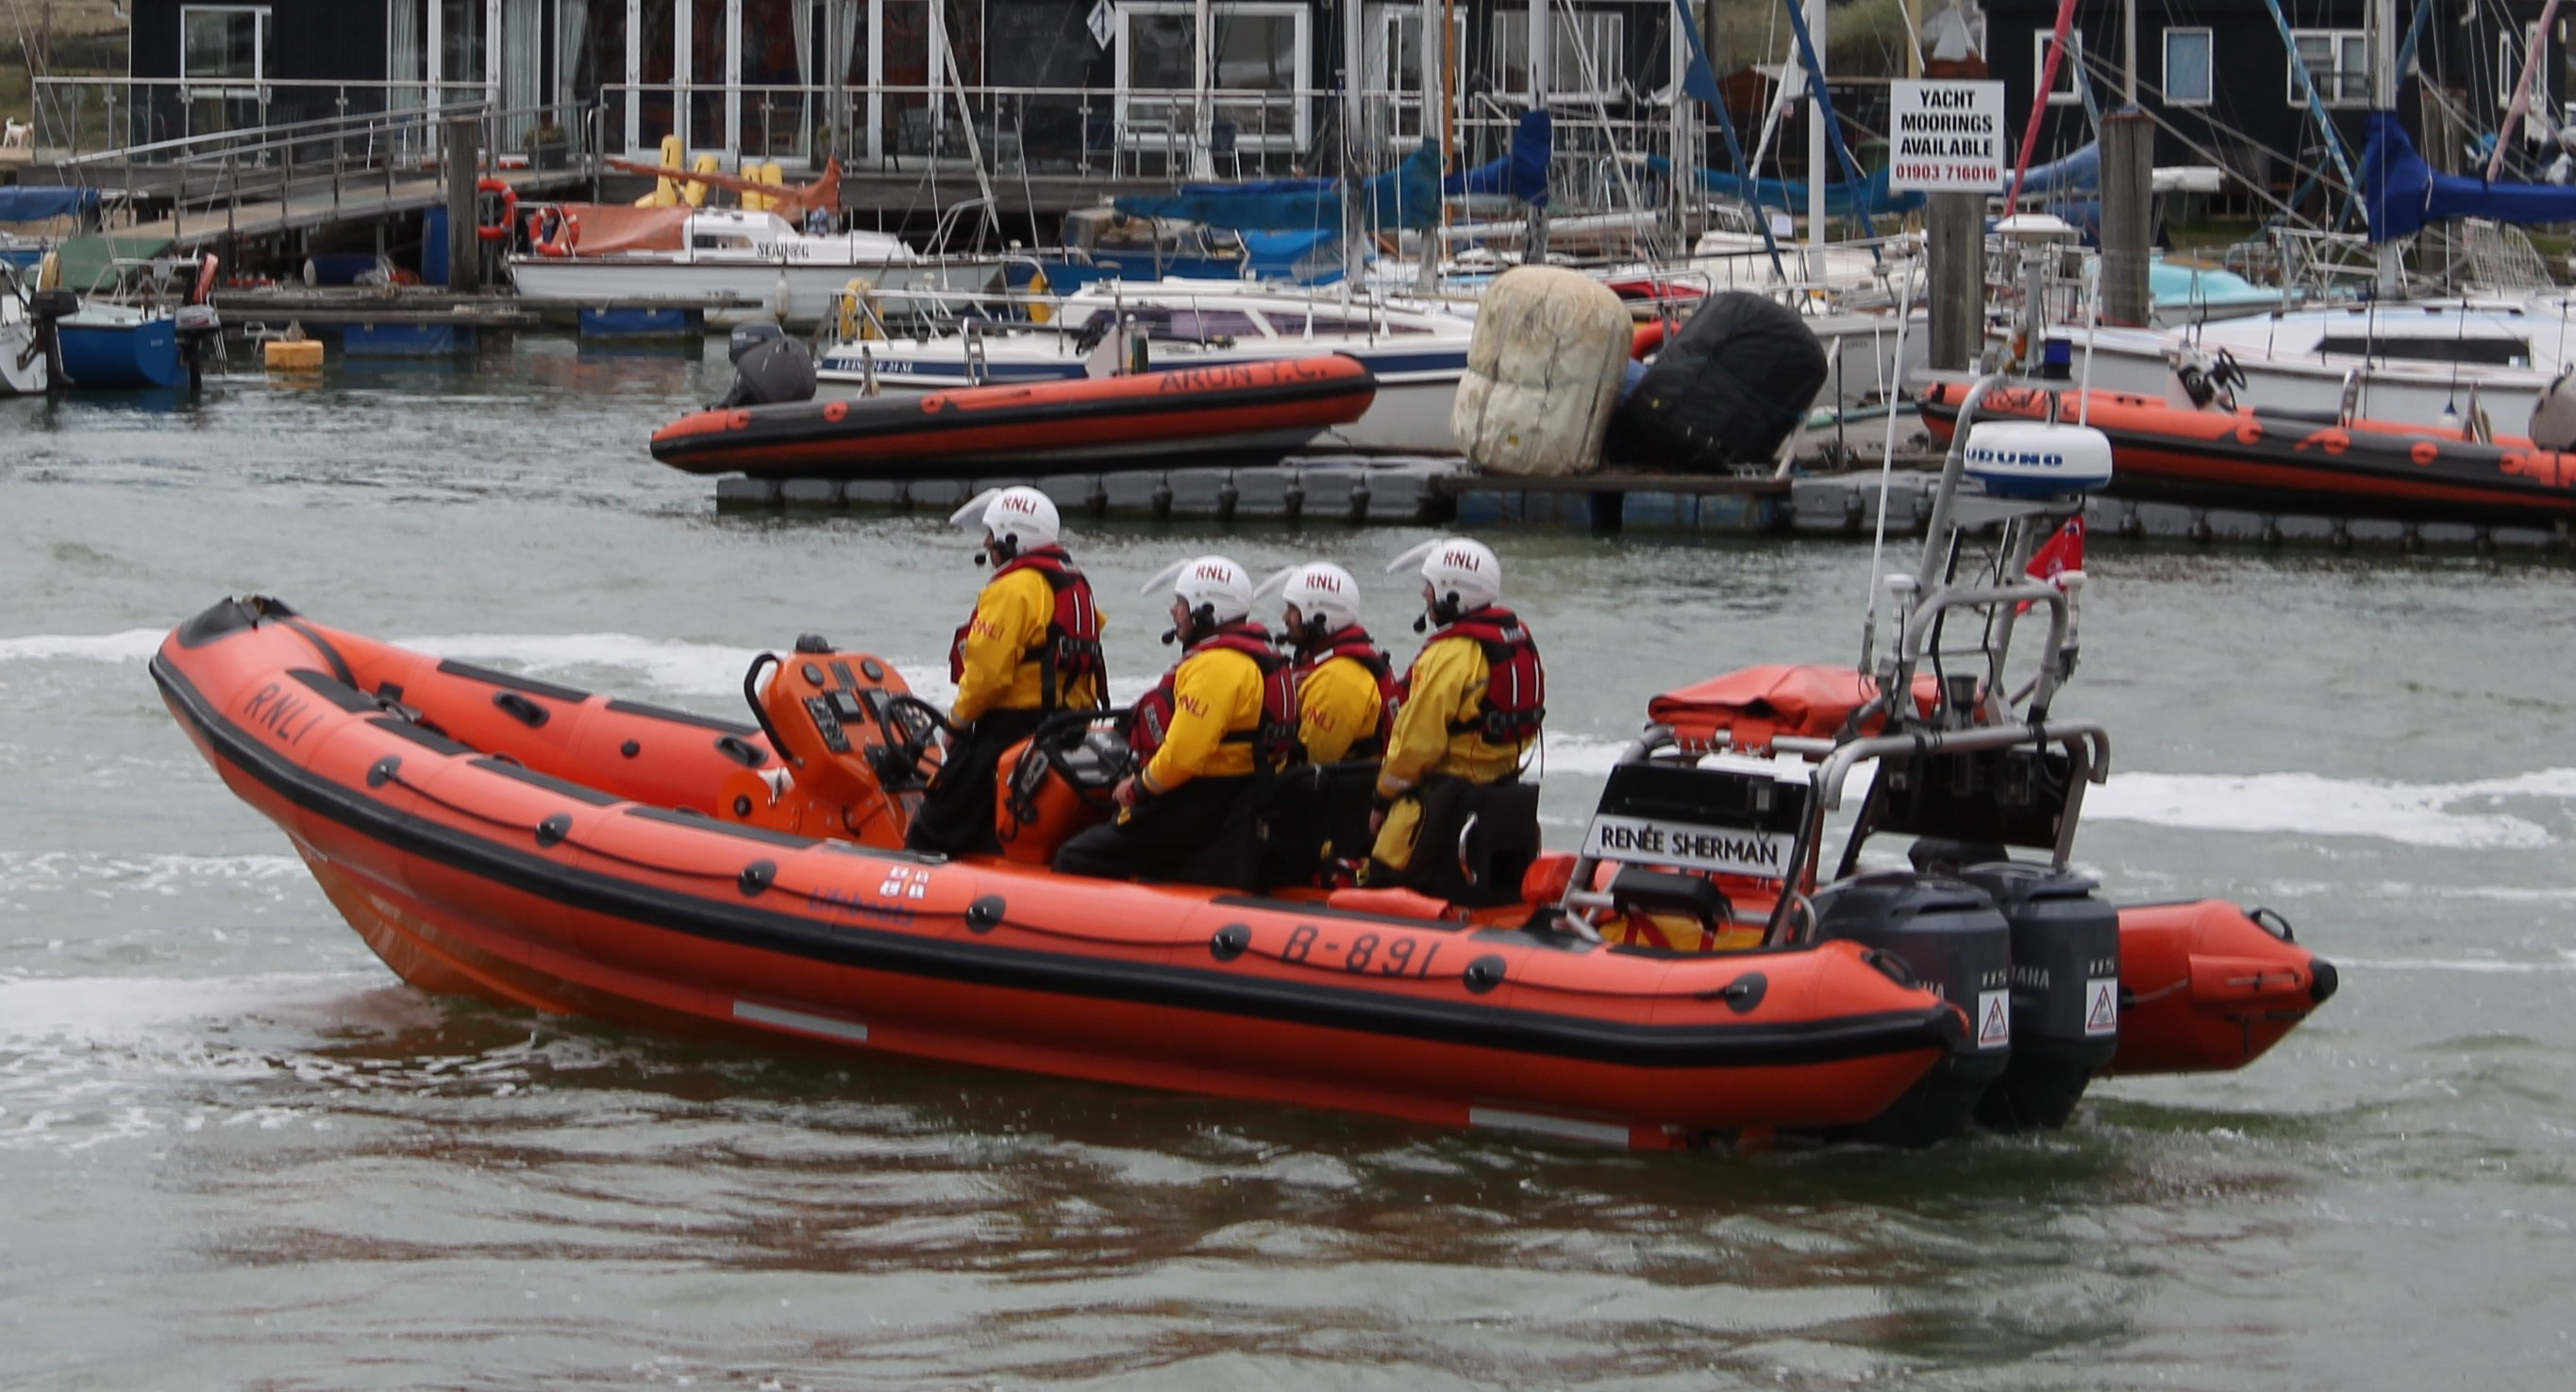 The picture is of the Littlehampton RNLI lifeboat Renee Sherman with four crew on board